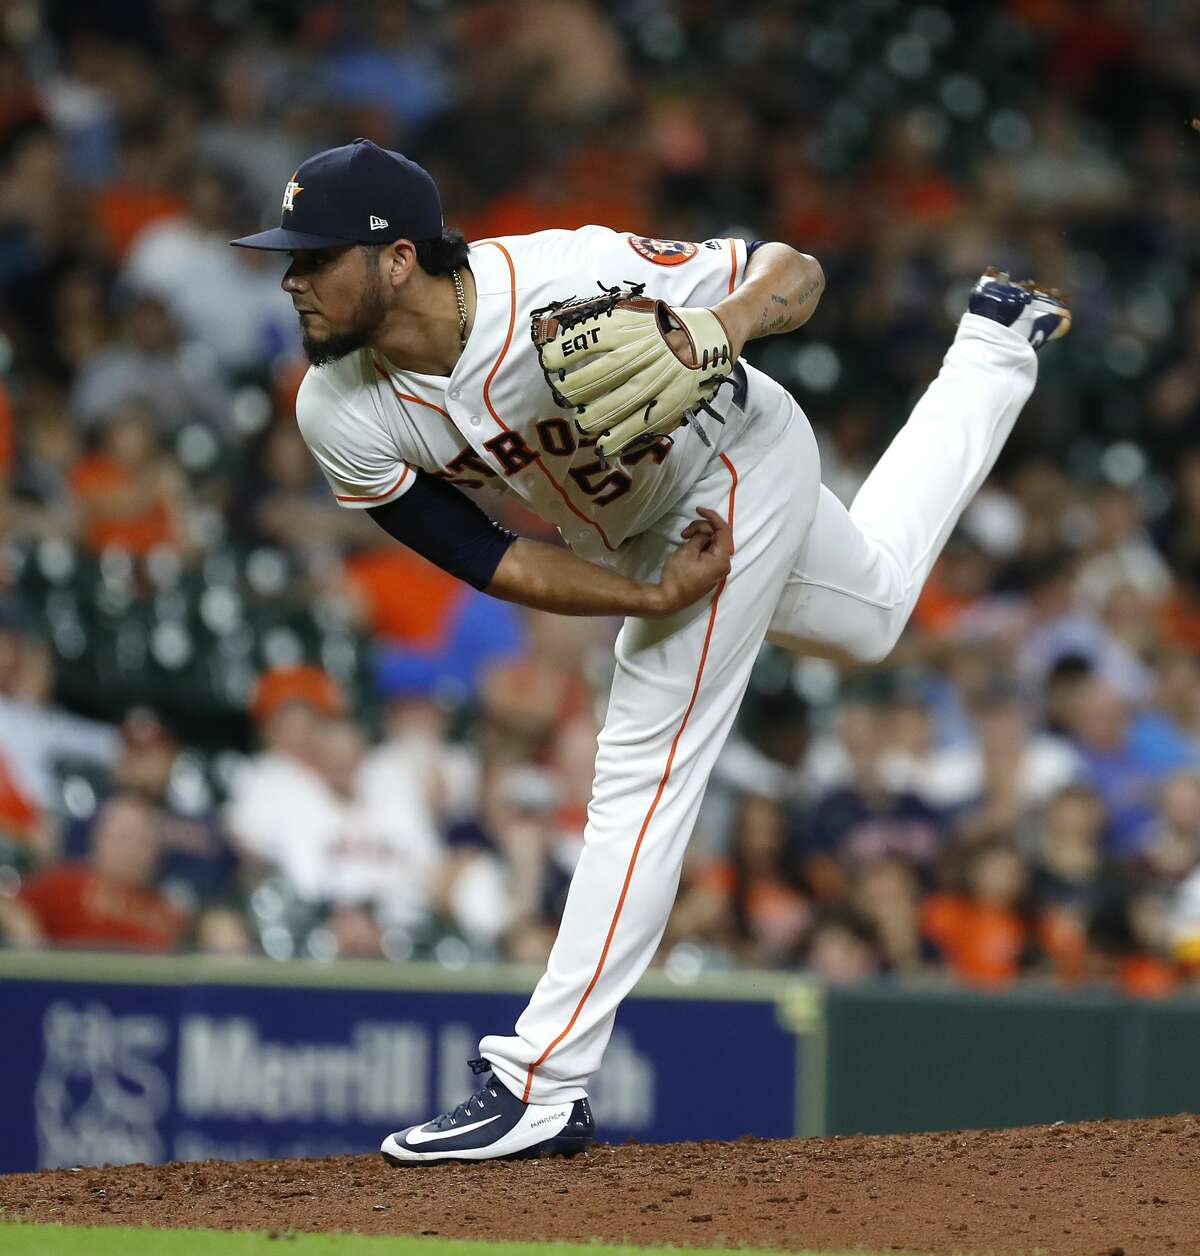 Houston Astros relief pitcher Roberto Osuna (54) pitches during the ninth inning of an MLB baseball game at Minute Maid Park, Tuesday, August 28, 2018, in Houston.